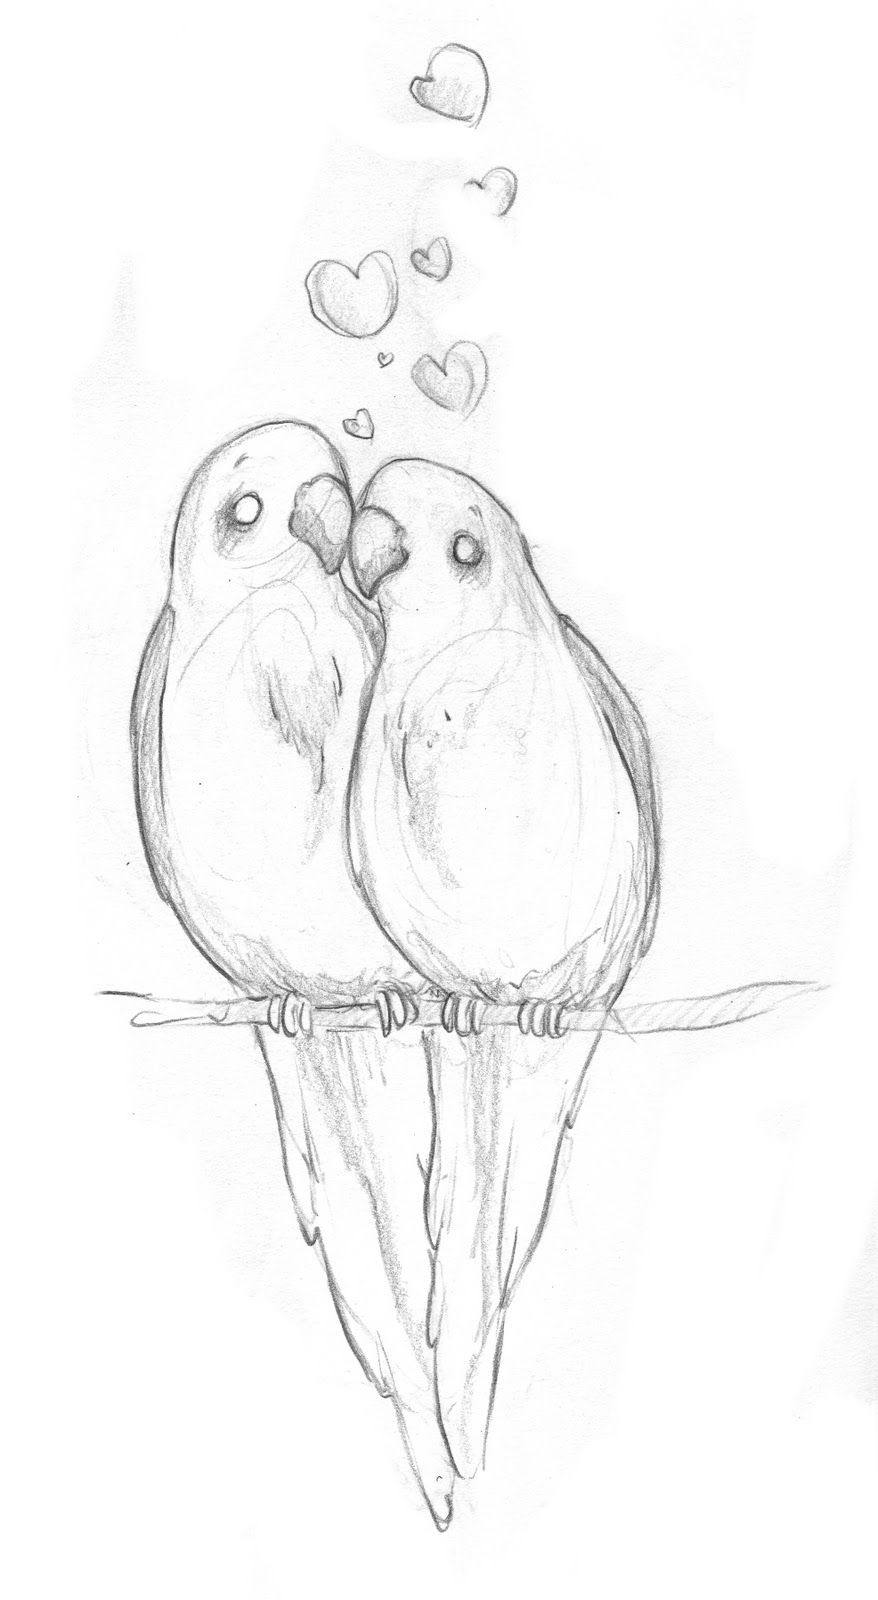 Pencil Sketch Drawing Of Birds